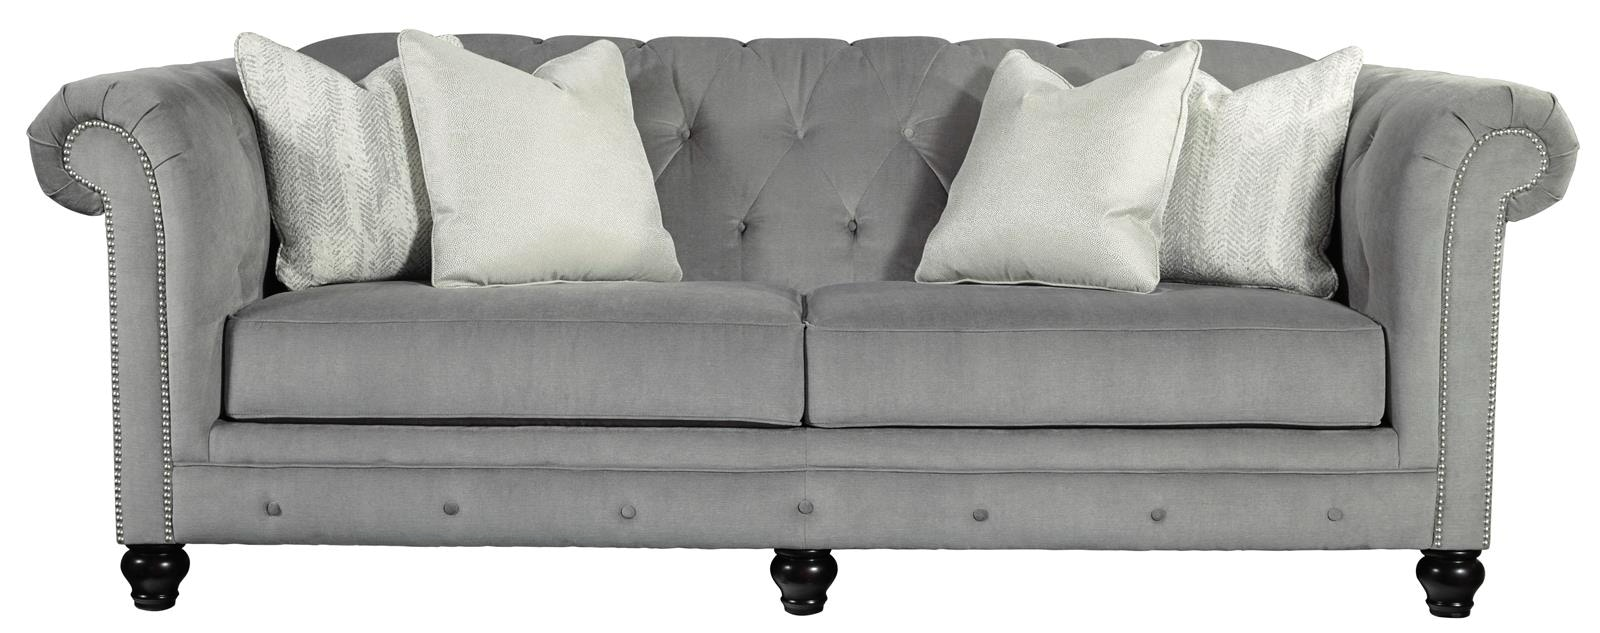 Delightful Ashley Sofa 7290138 In Portland, Oregon